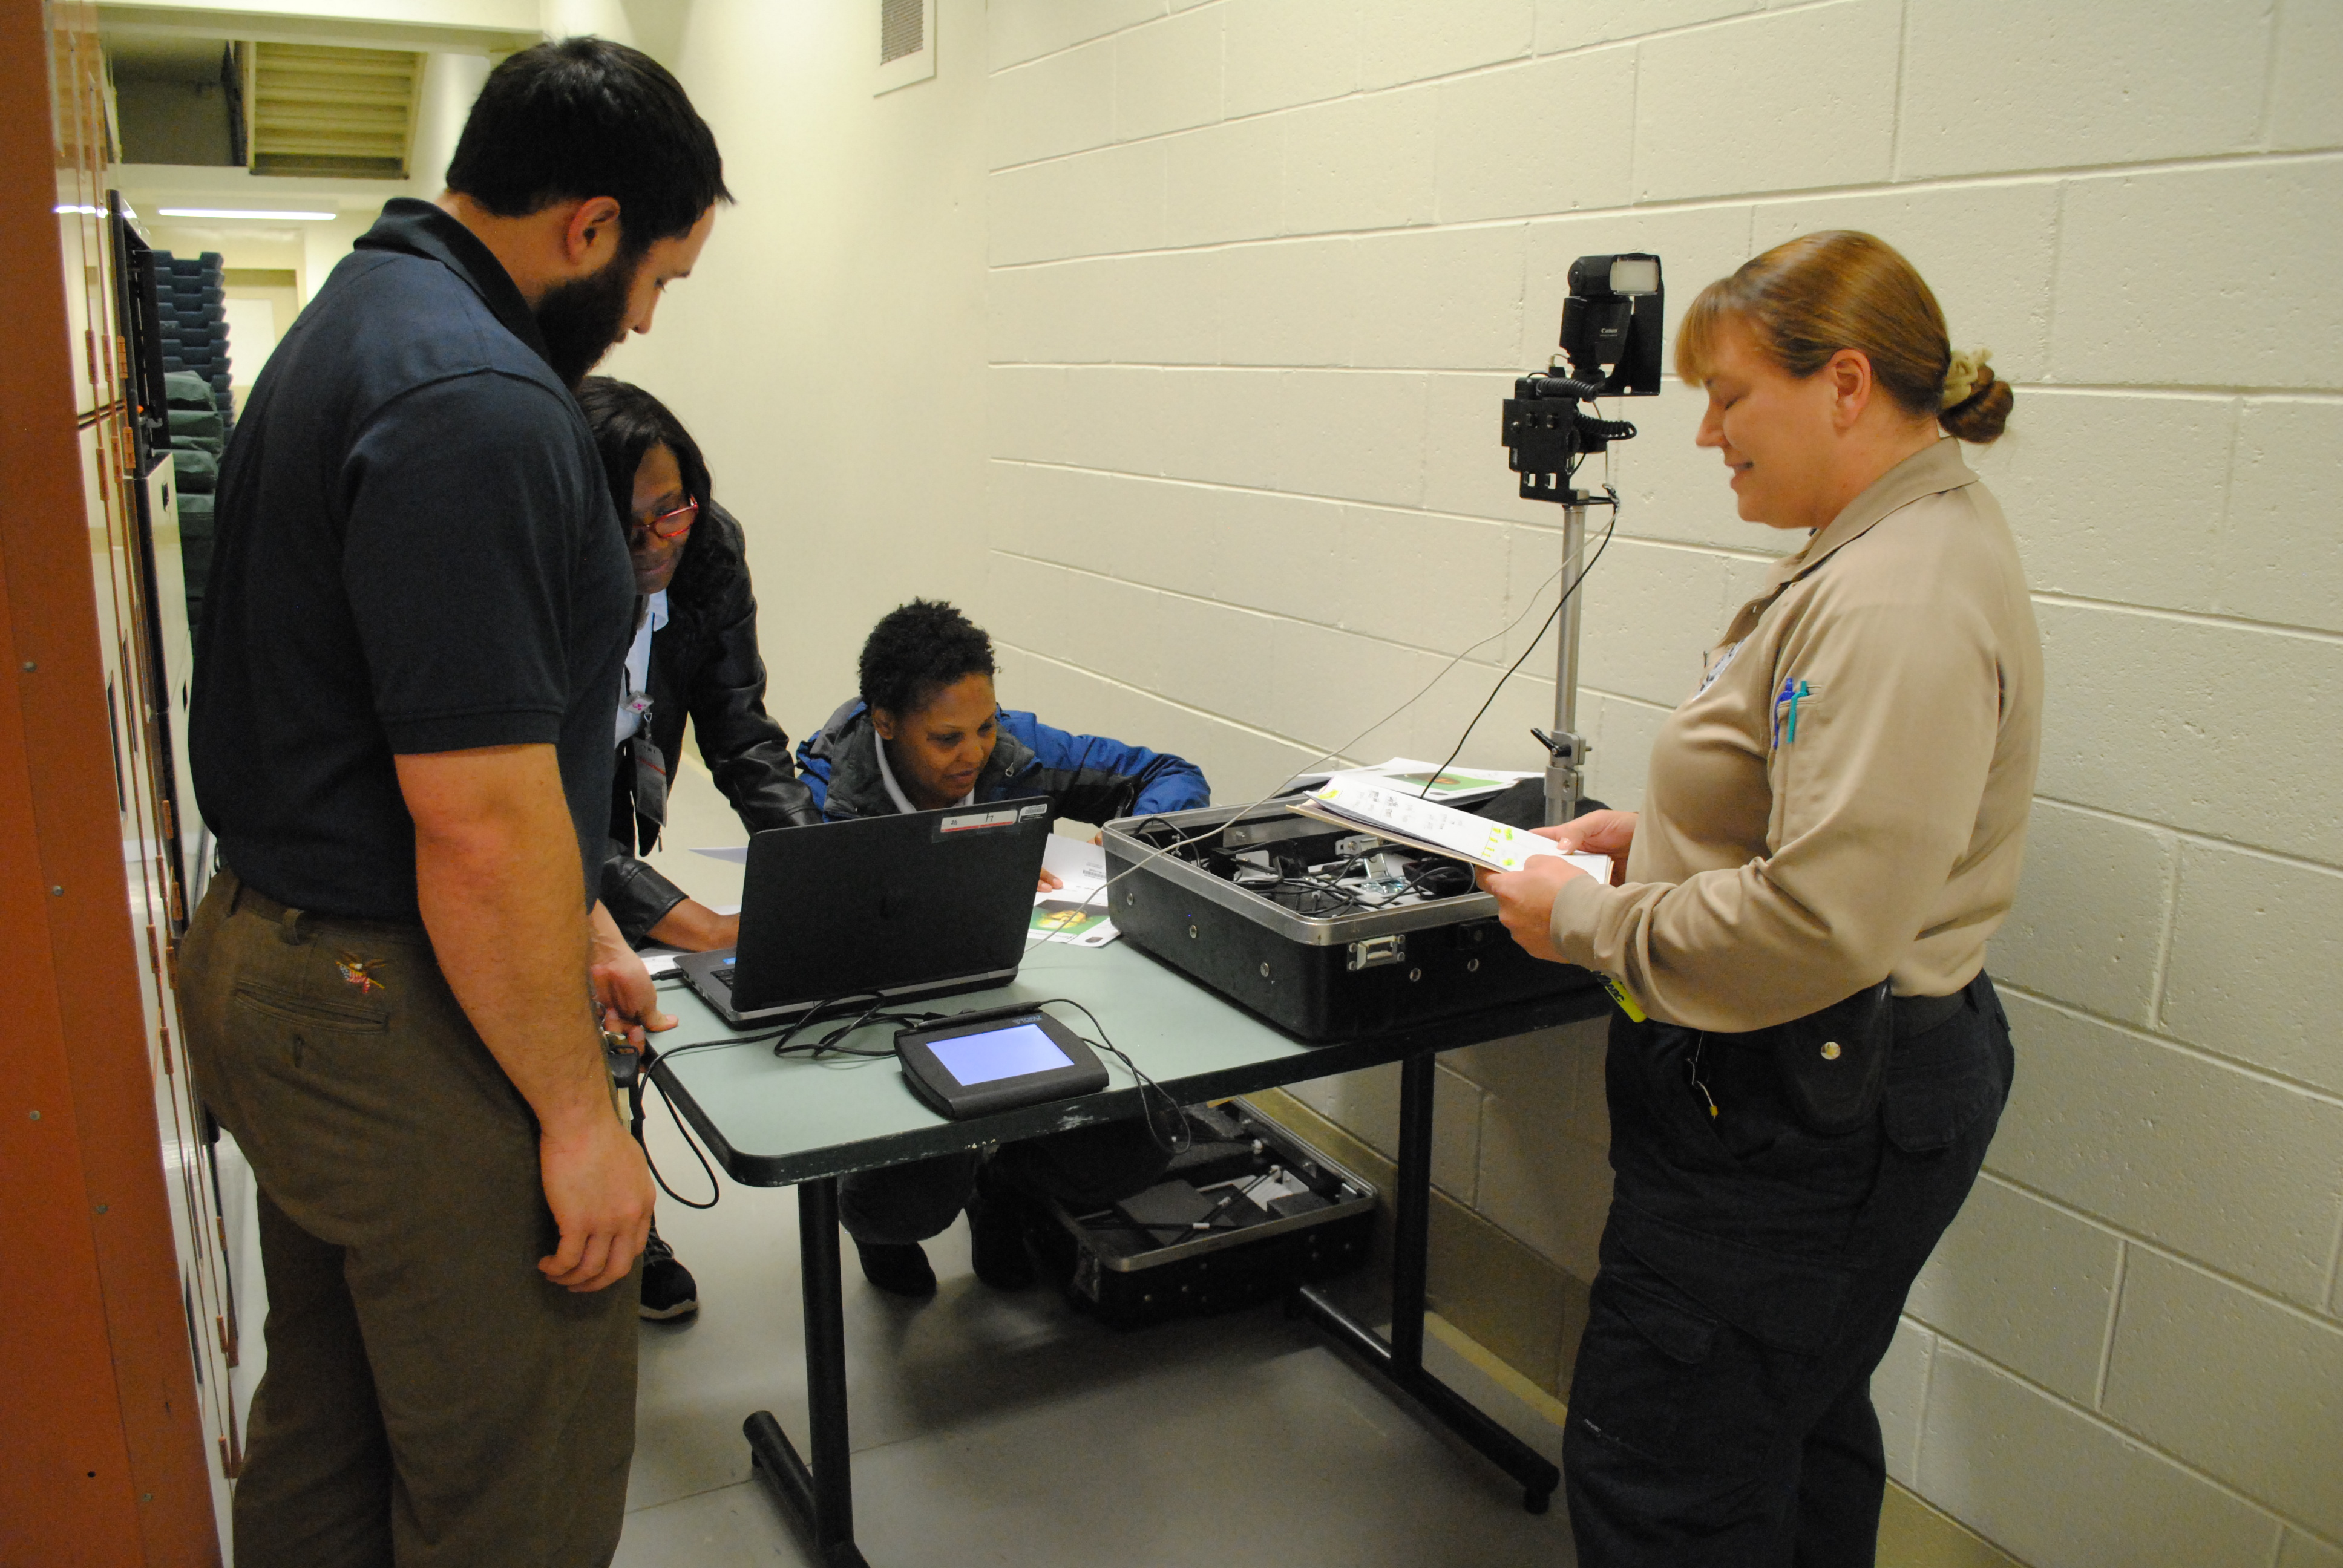 DMV employees Eddie Chandler, Jeraye Booth and Latasha Hill set up a mobile ID card station at the Virginia Peninsula Regional Jail. Cpl. Christina McCain (right) runs the program at the jail. (Sarah Fearing/WYDaily)